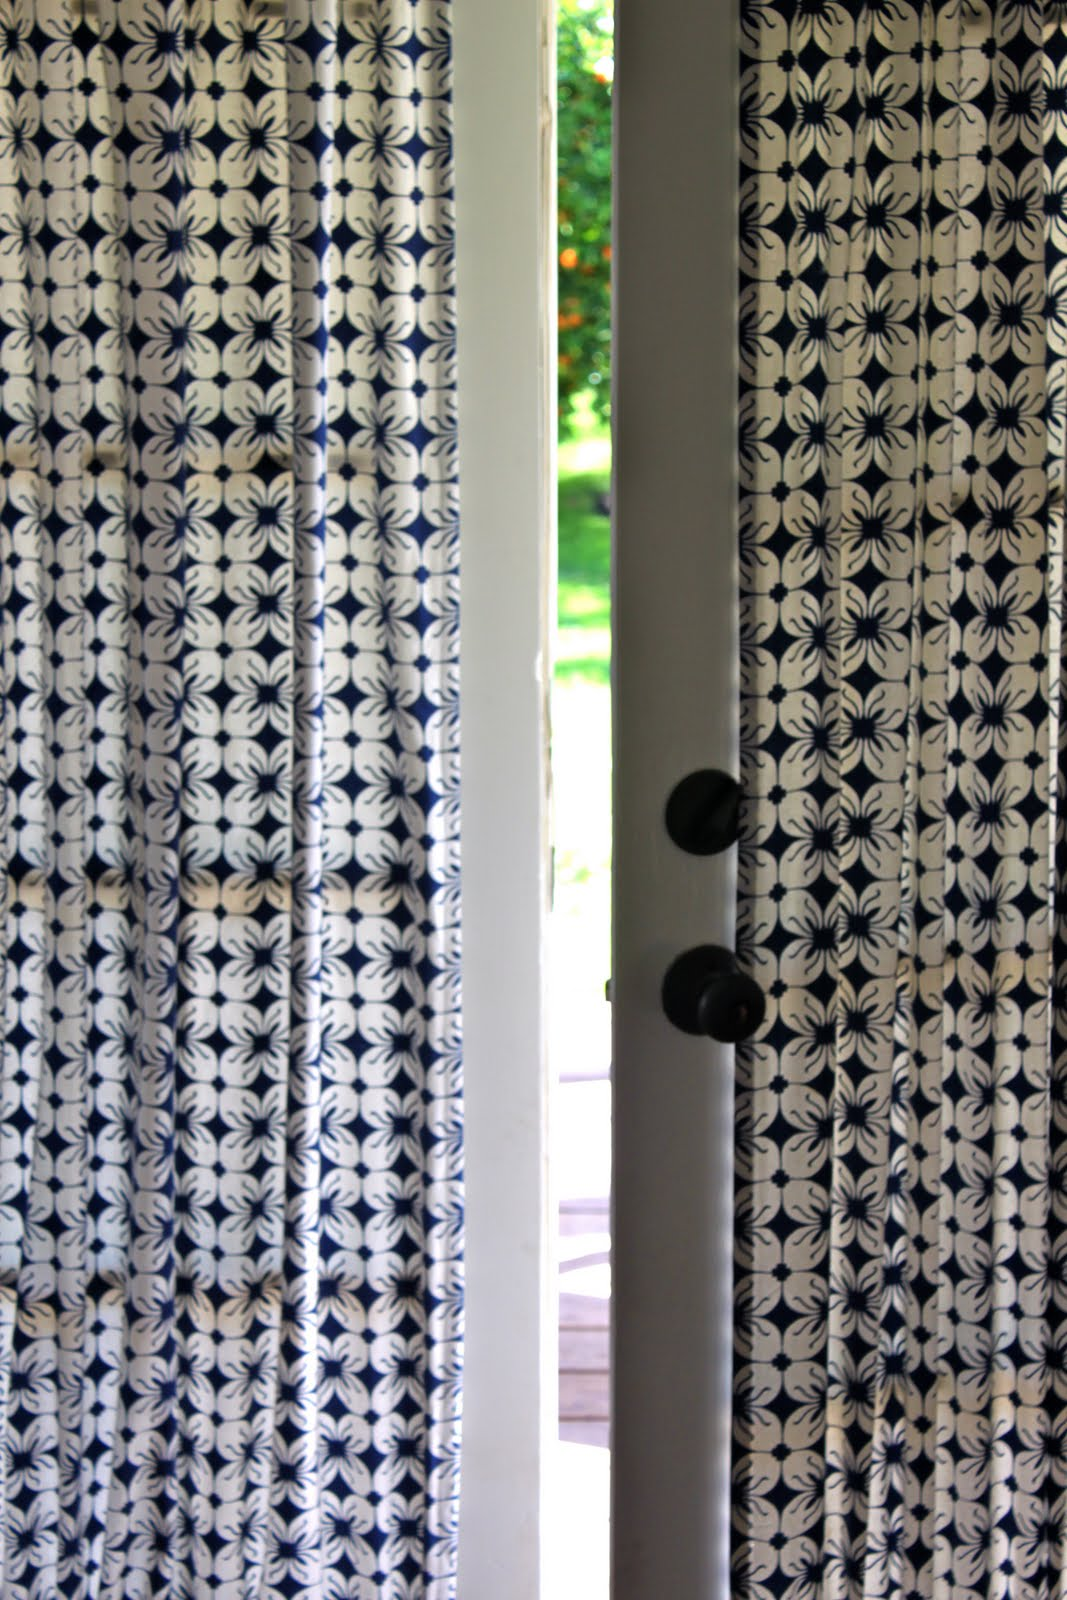 French door curtain rods - French Doors Are A Bit Of A Curtain Conundrum If You Use Hanging Curtains On A Rod Above They Re Always In The Way When You Want To Go In And Out